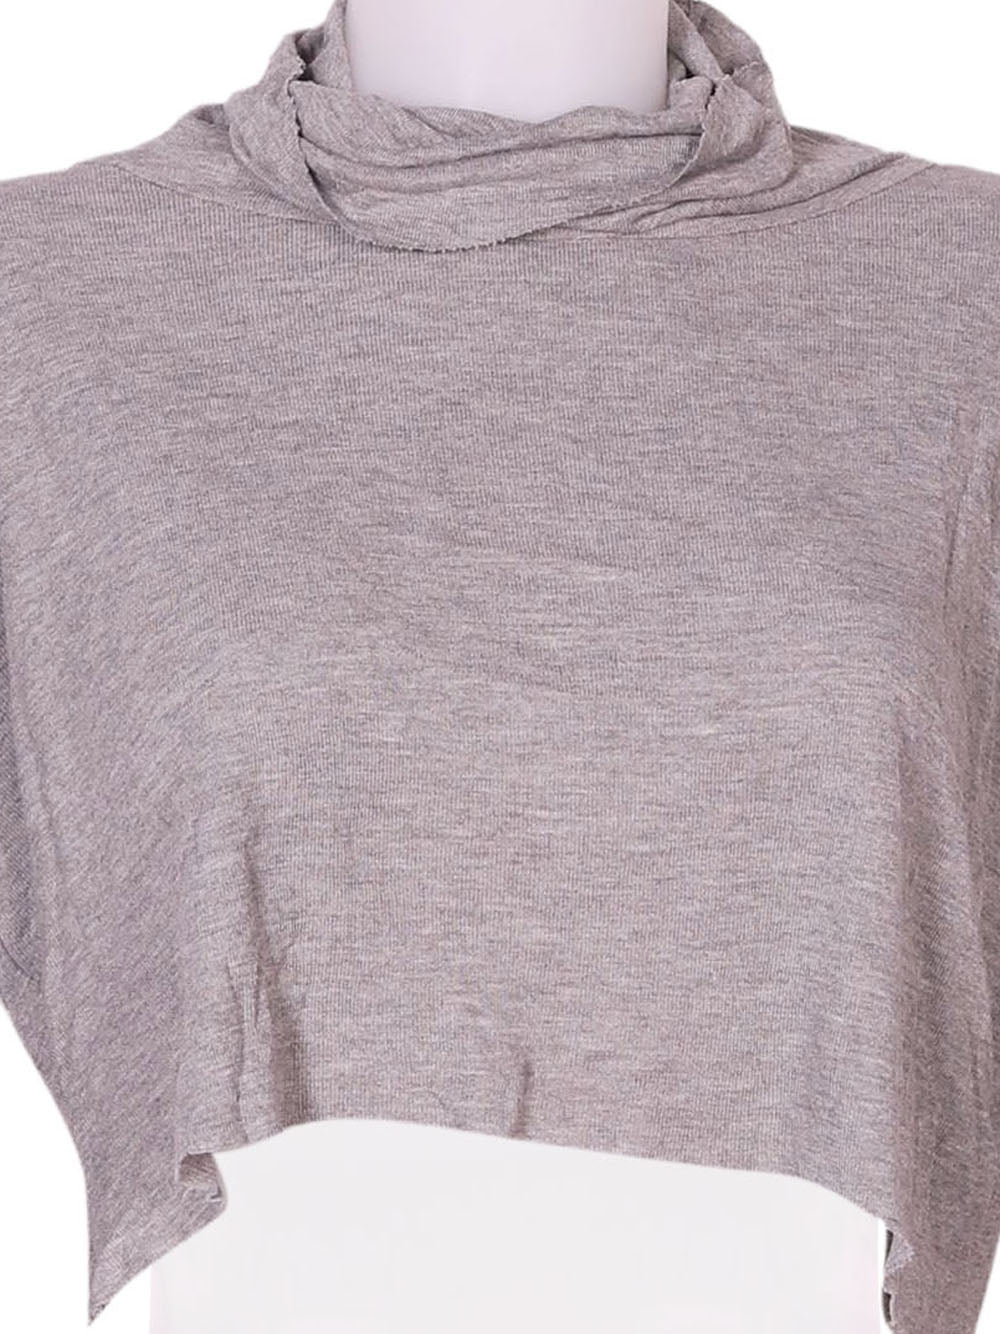 Detail photo of Preloved Oysho Grey Woman's long sleeved shirt - size 10/M